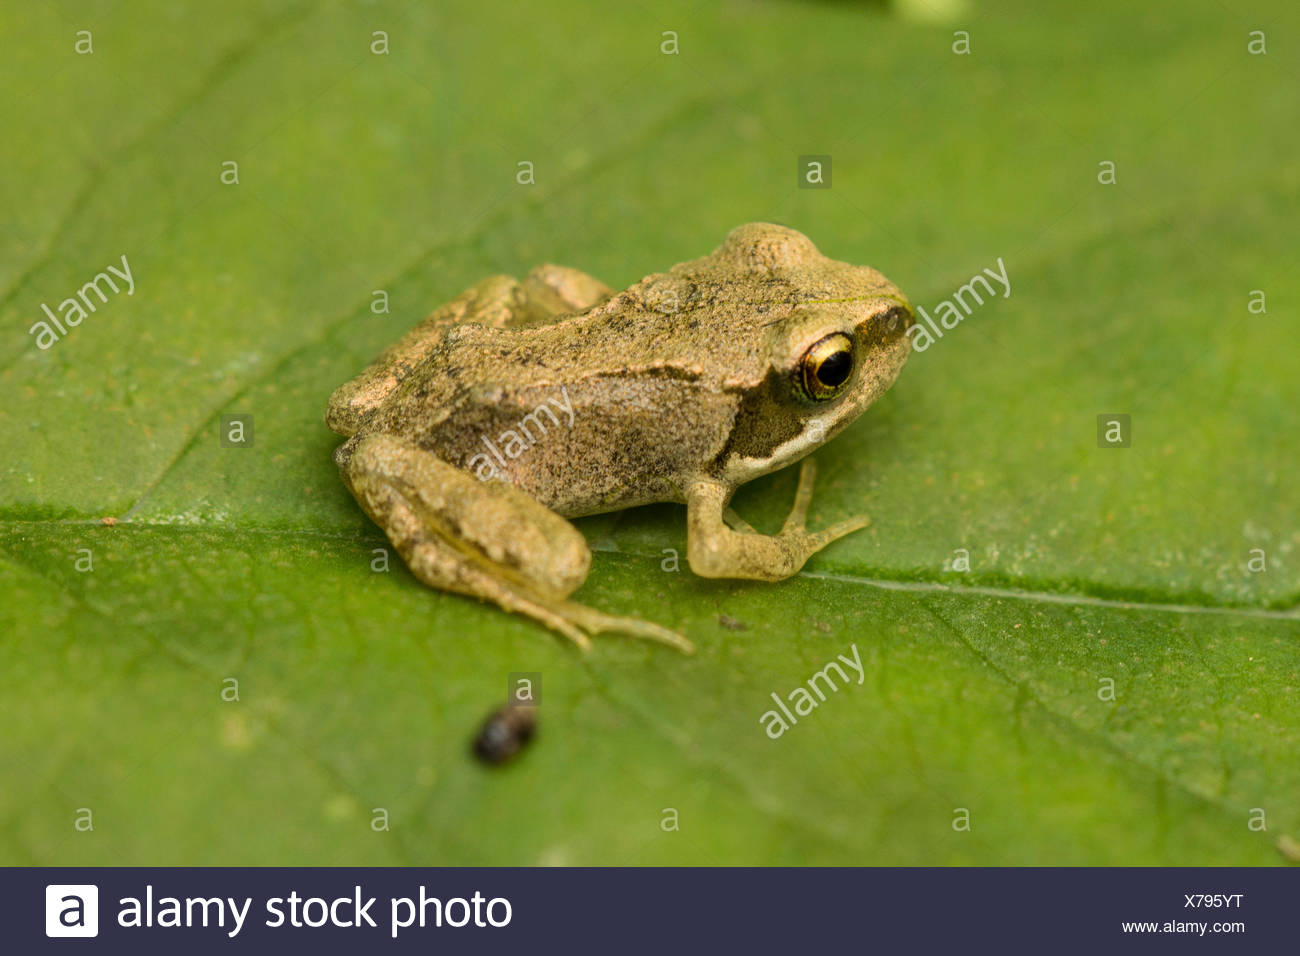 common frog, grass frog (Rana temporaria), exemplar with recently finished metamorphosis sitting on a leaf, Germany - Stock Image